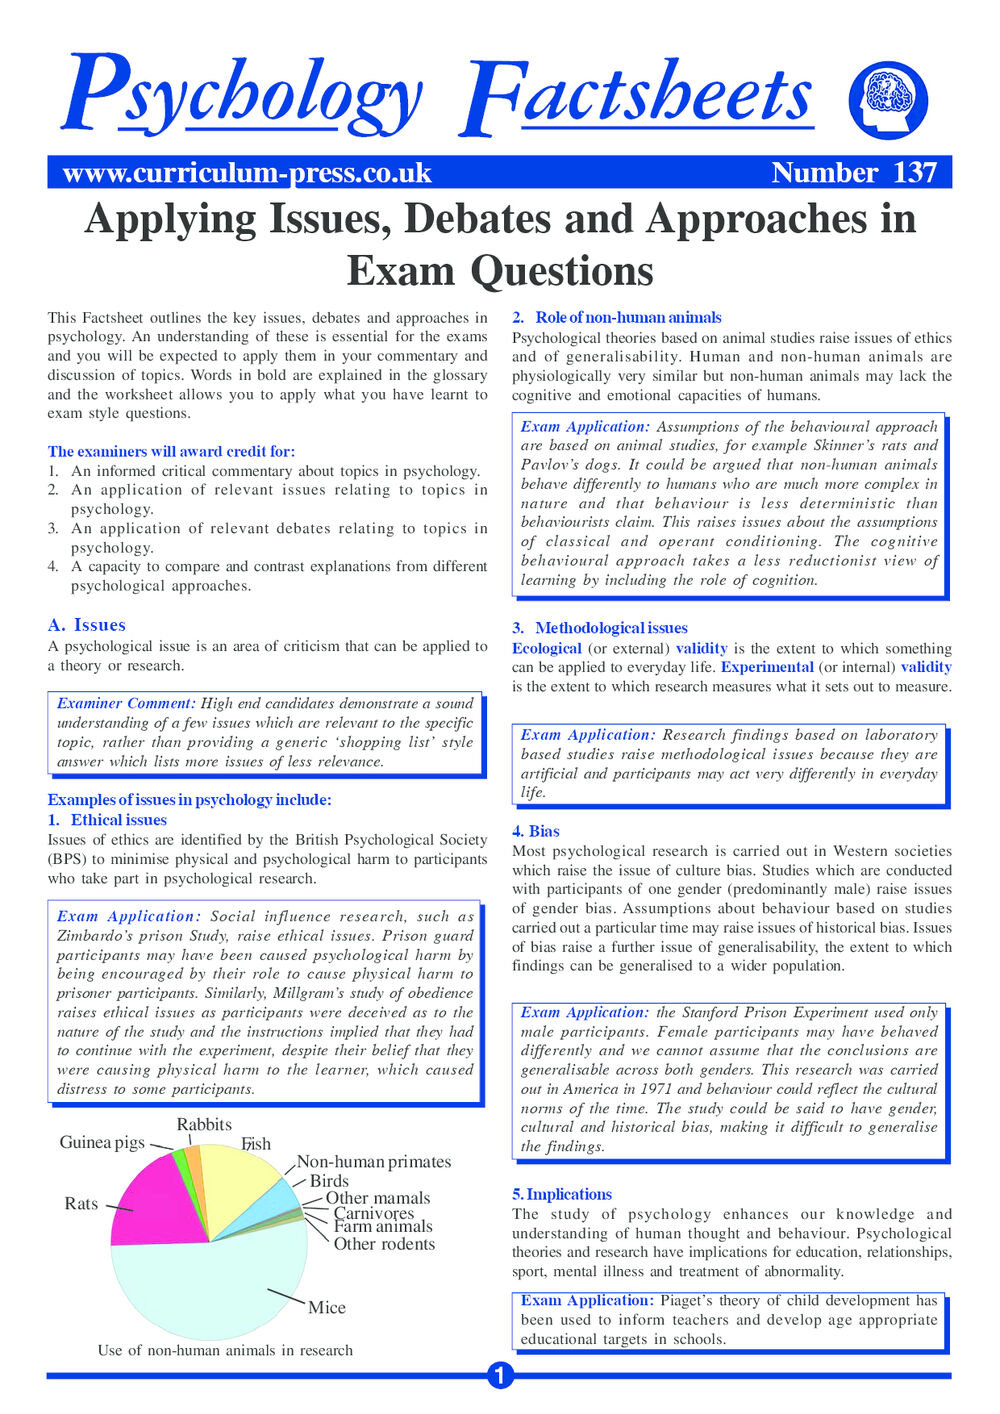 Curriculum Press - Applying Issues, Debates and Approaches